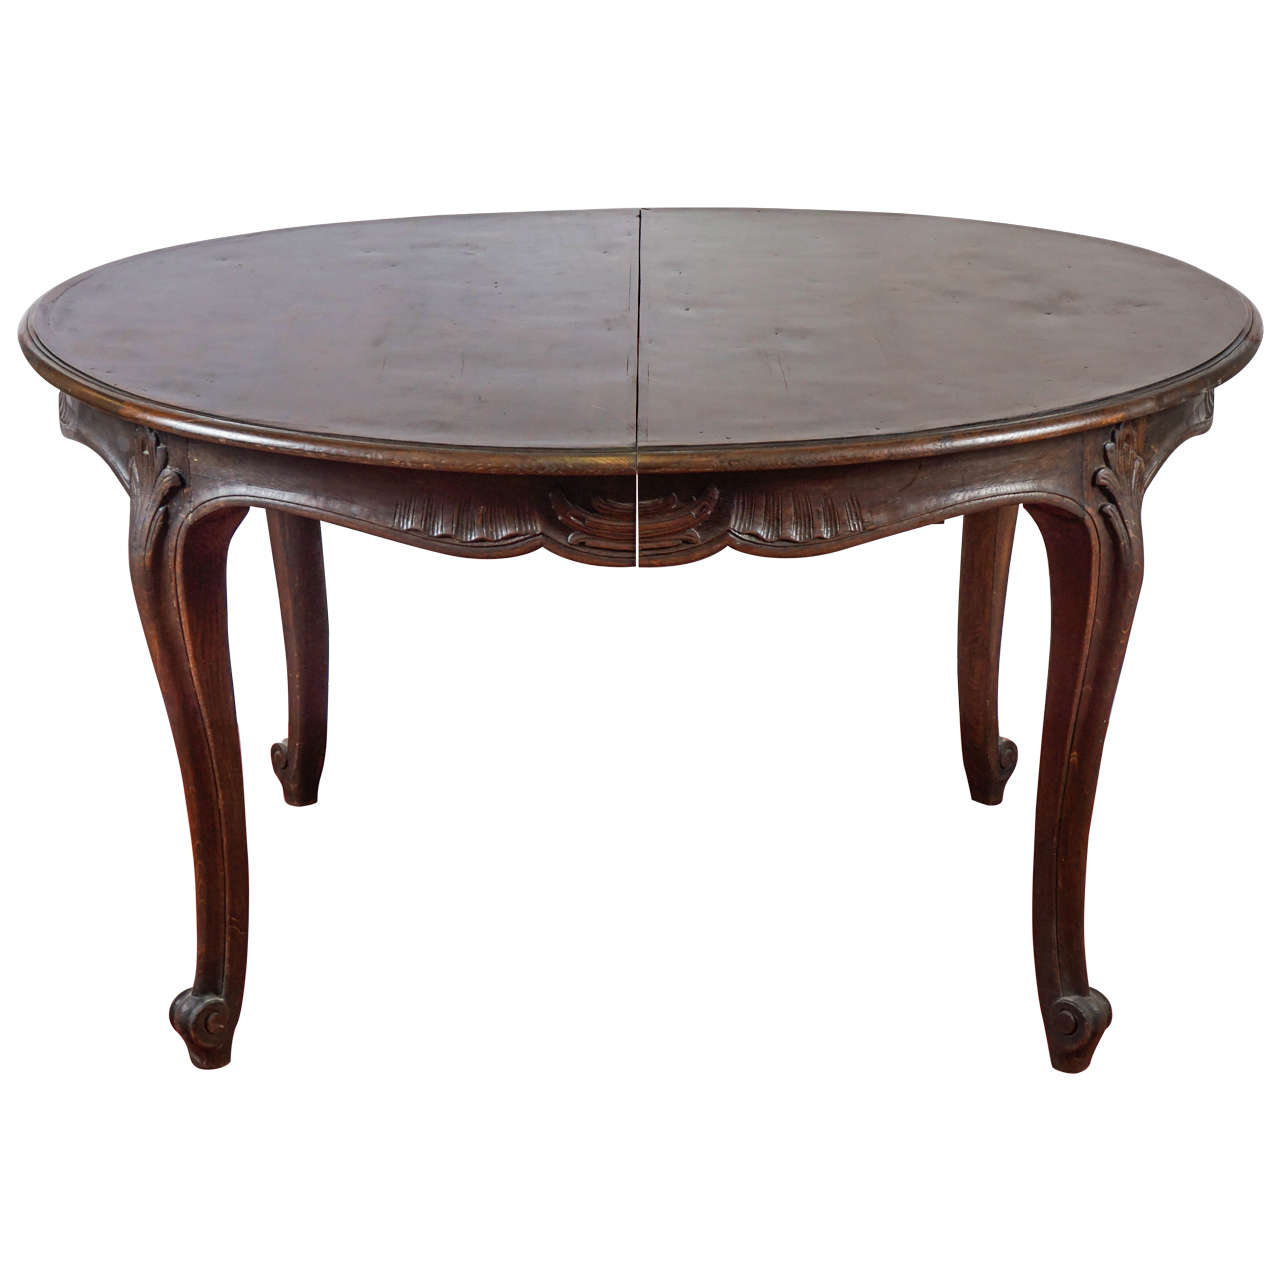 Dining Room Table Styles Of Louis Xv Style Oval Dining Table For Sale At 1stdibs